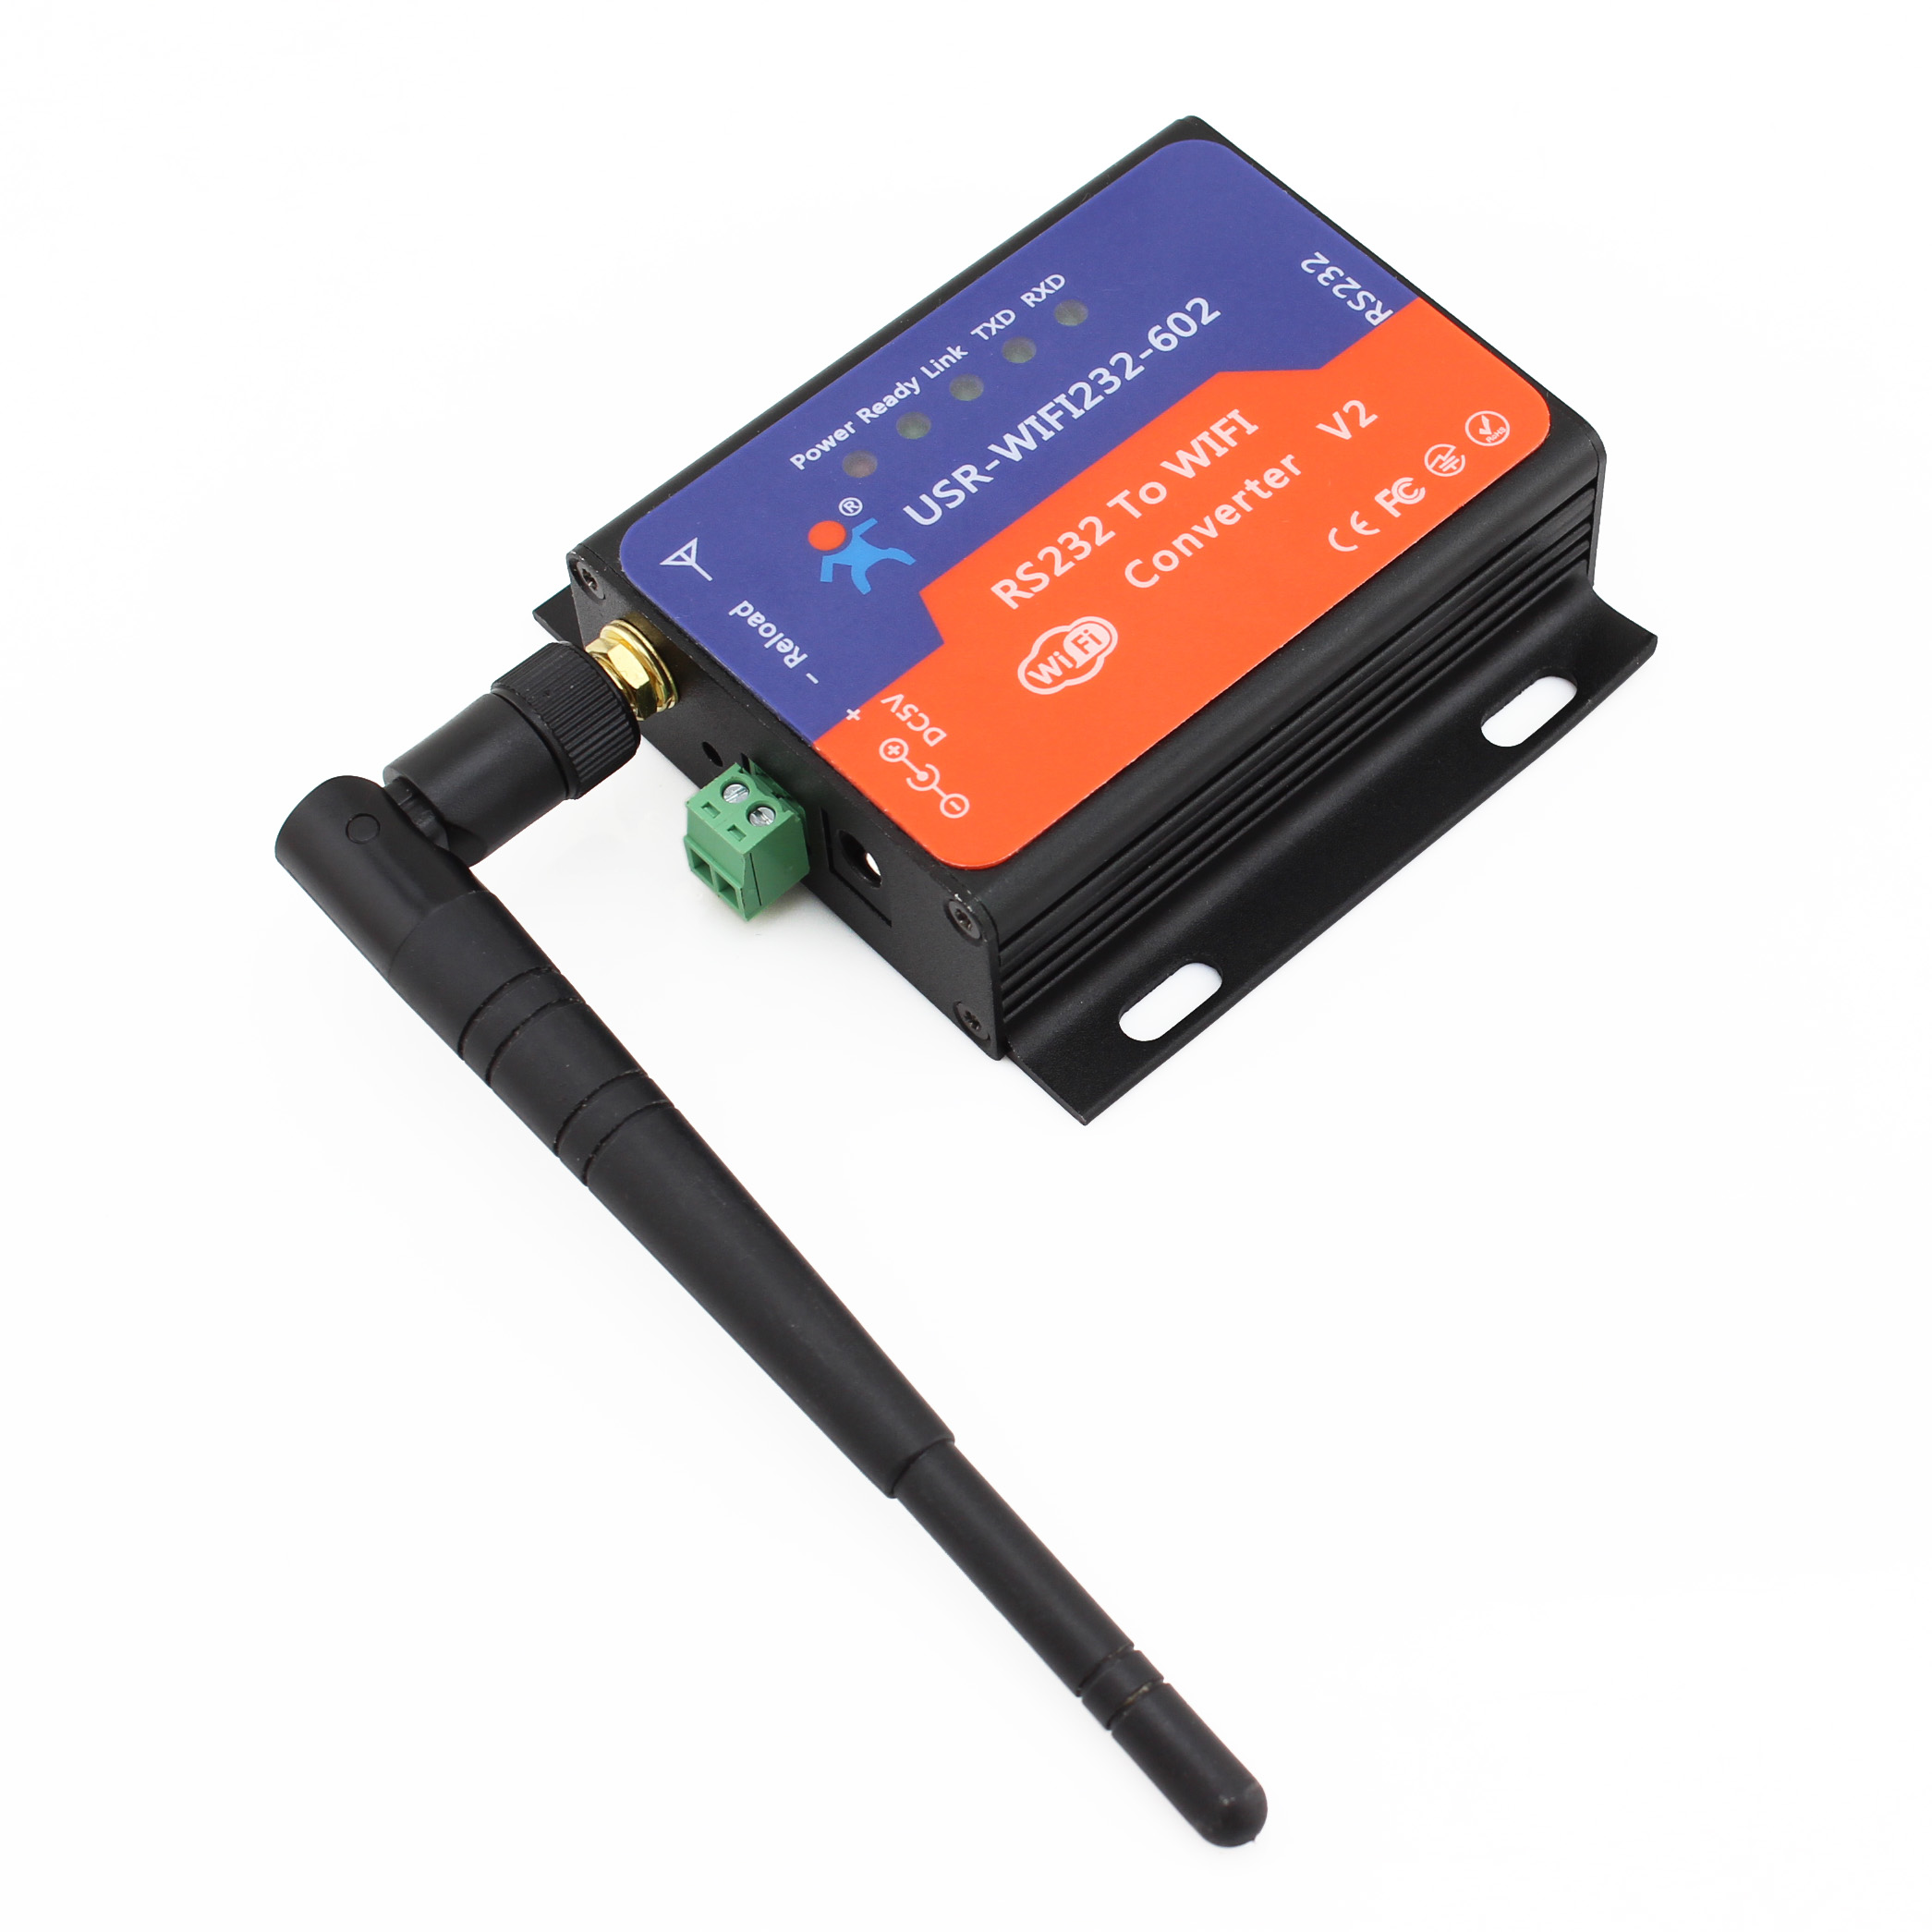 USR-WIFI232-602 V2 RS232 WIFI converters RS232 to Wireless 802.11 b/g/n Converters with Router Function Q00196<br>